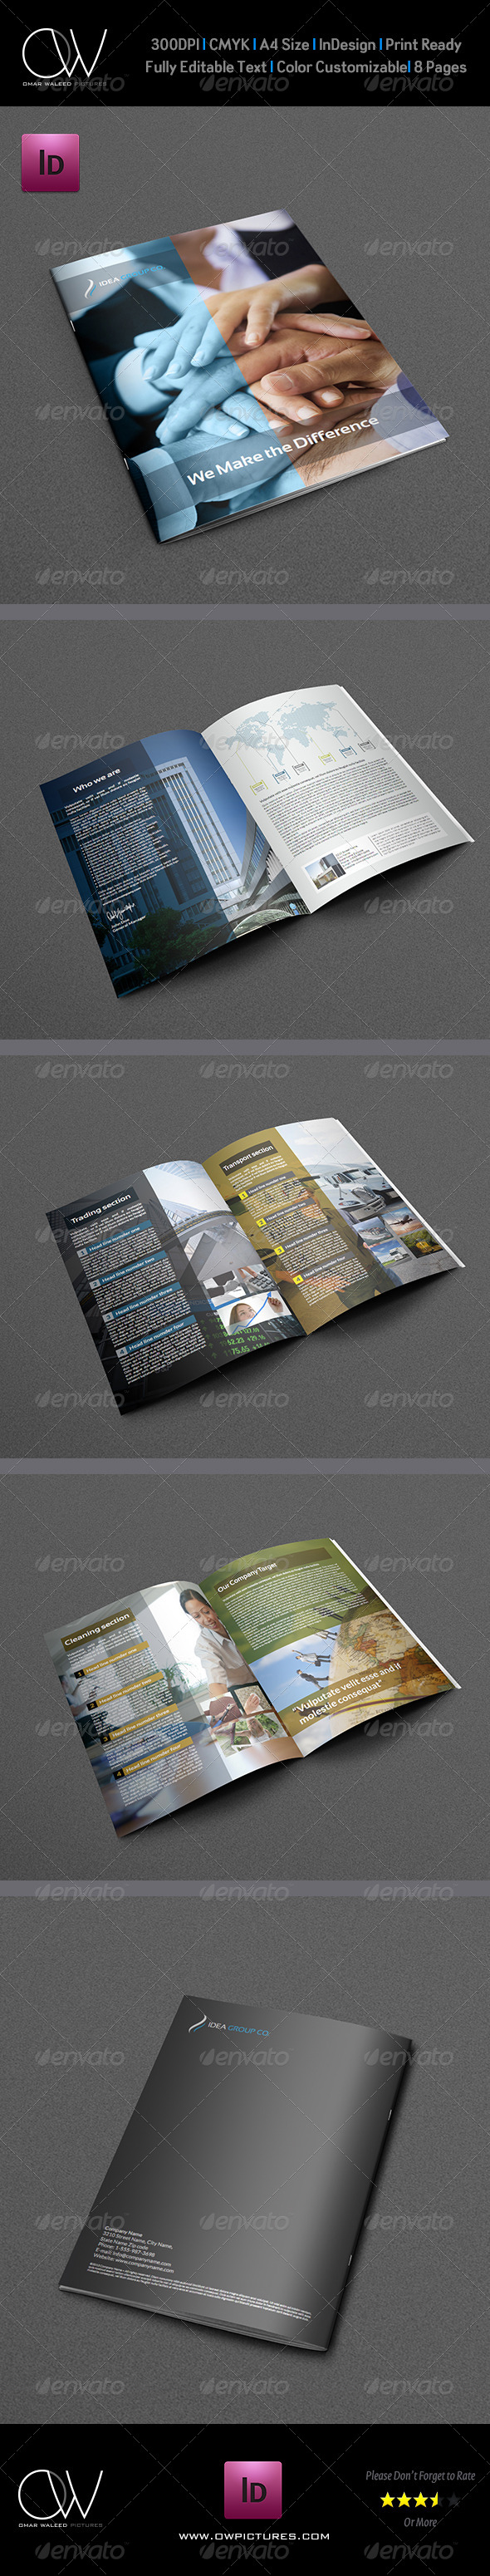 GraphicRiver Company Brochure Template Vol.8 8 Pages 5588679